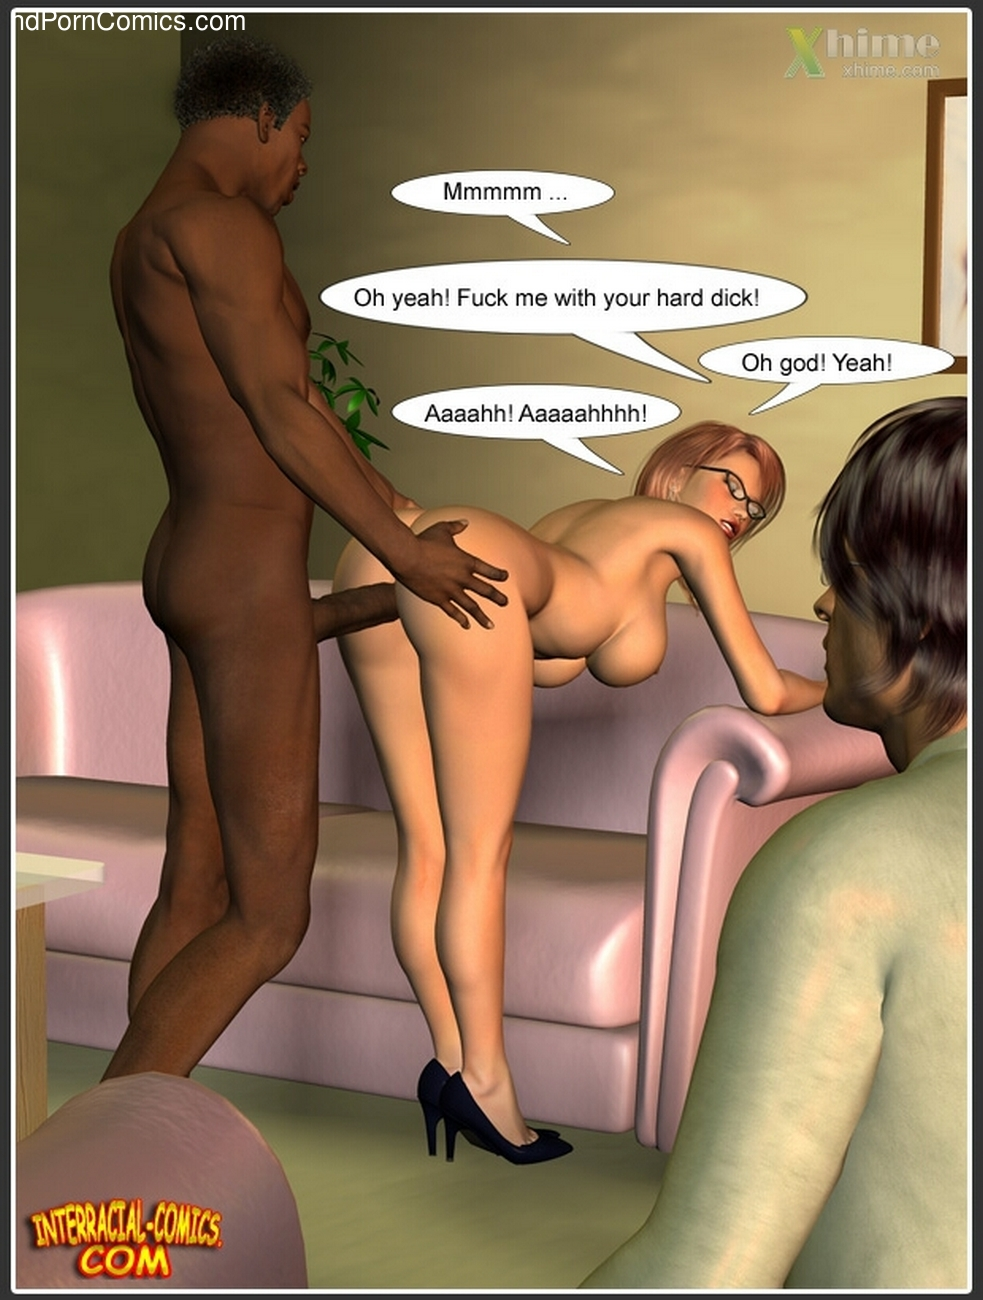 Wife Service 7 free sex comic